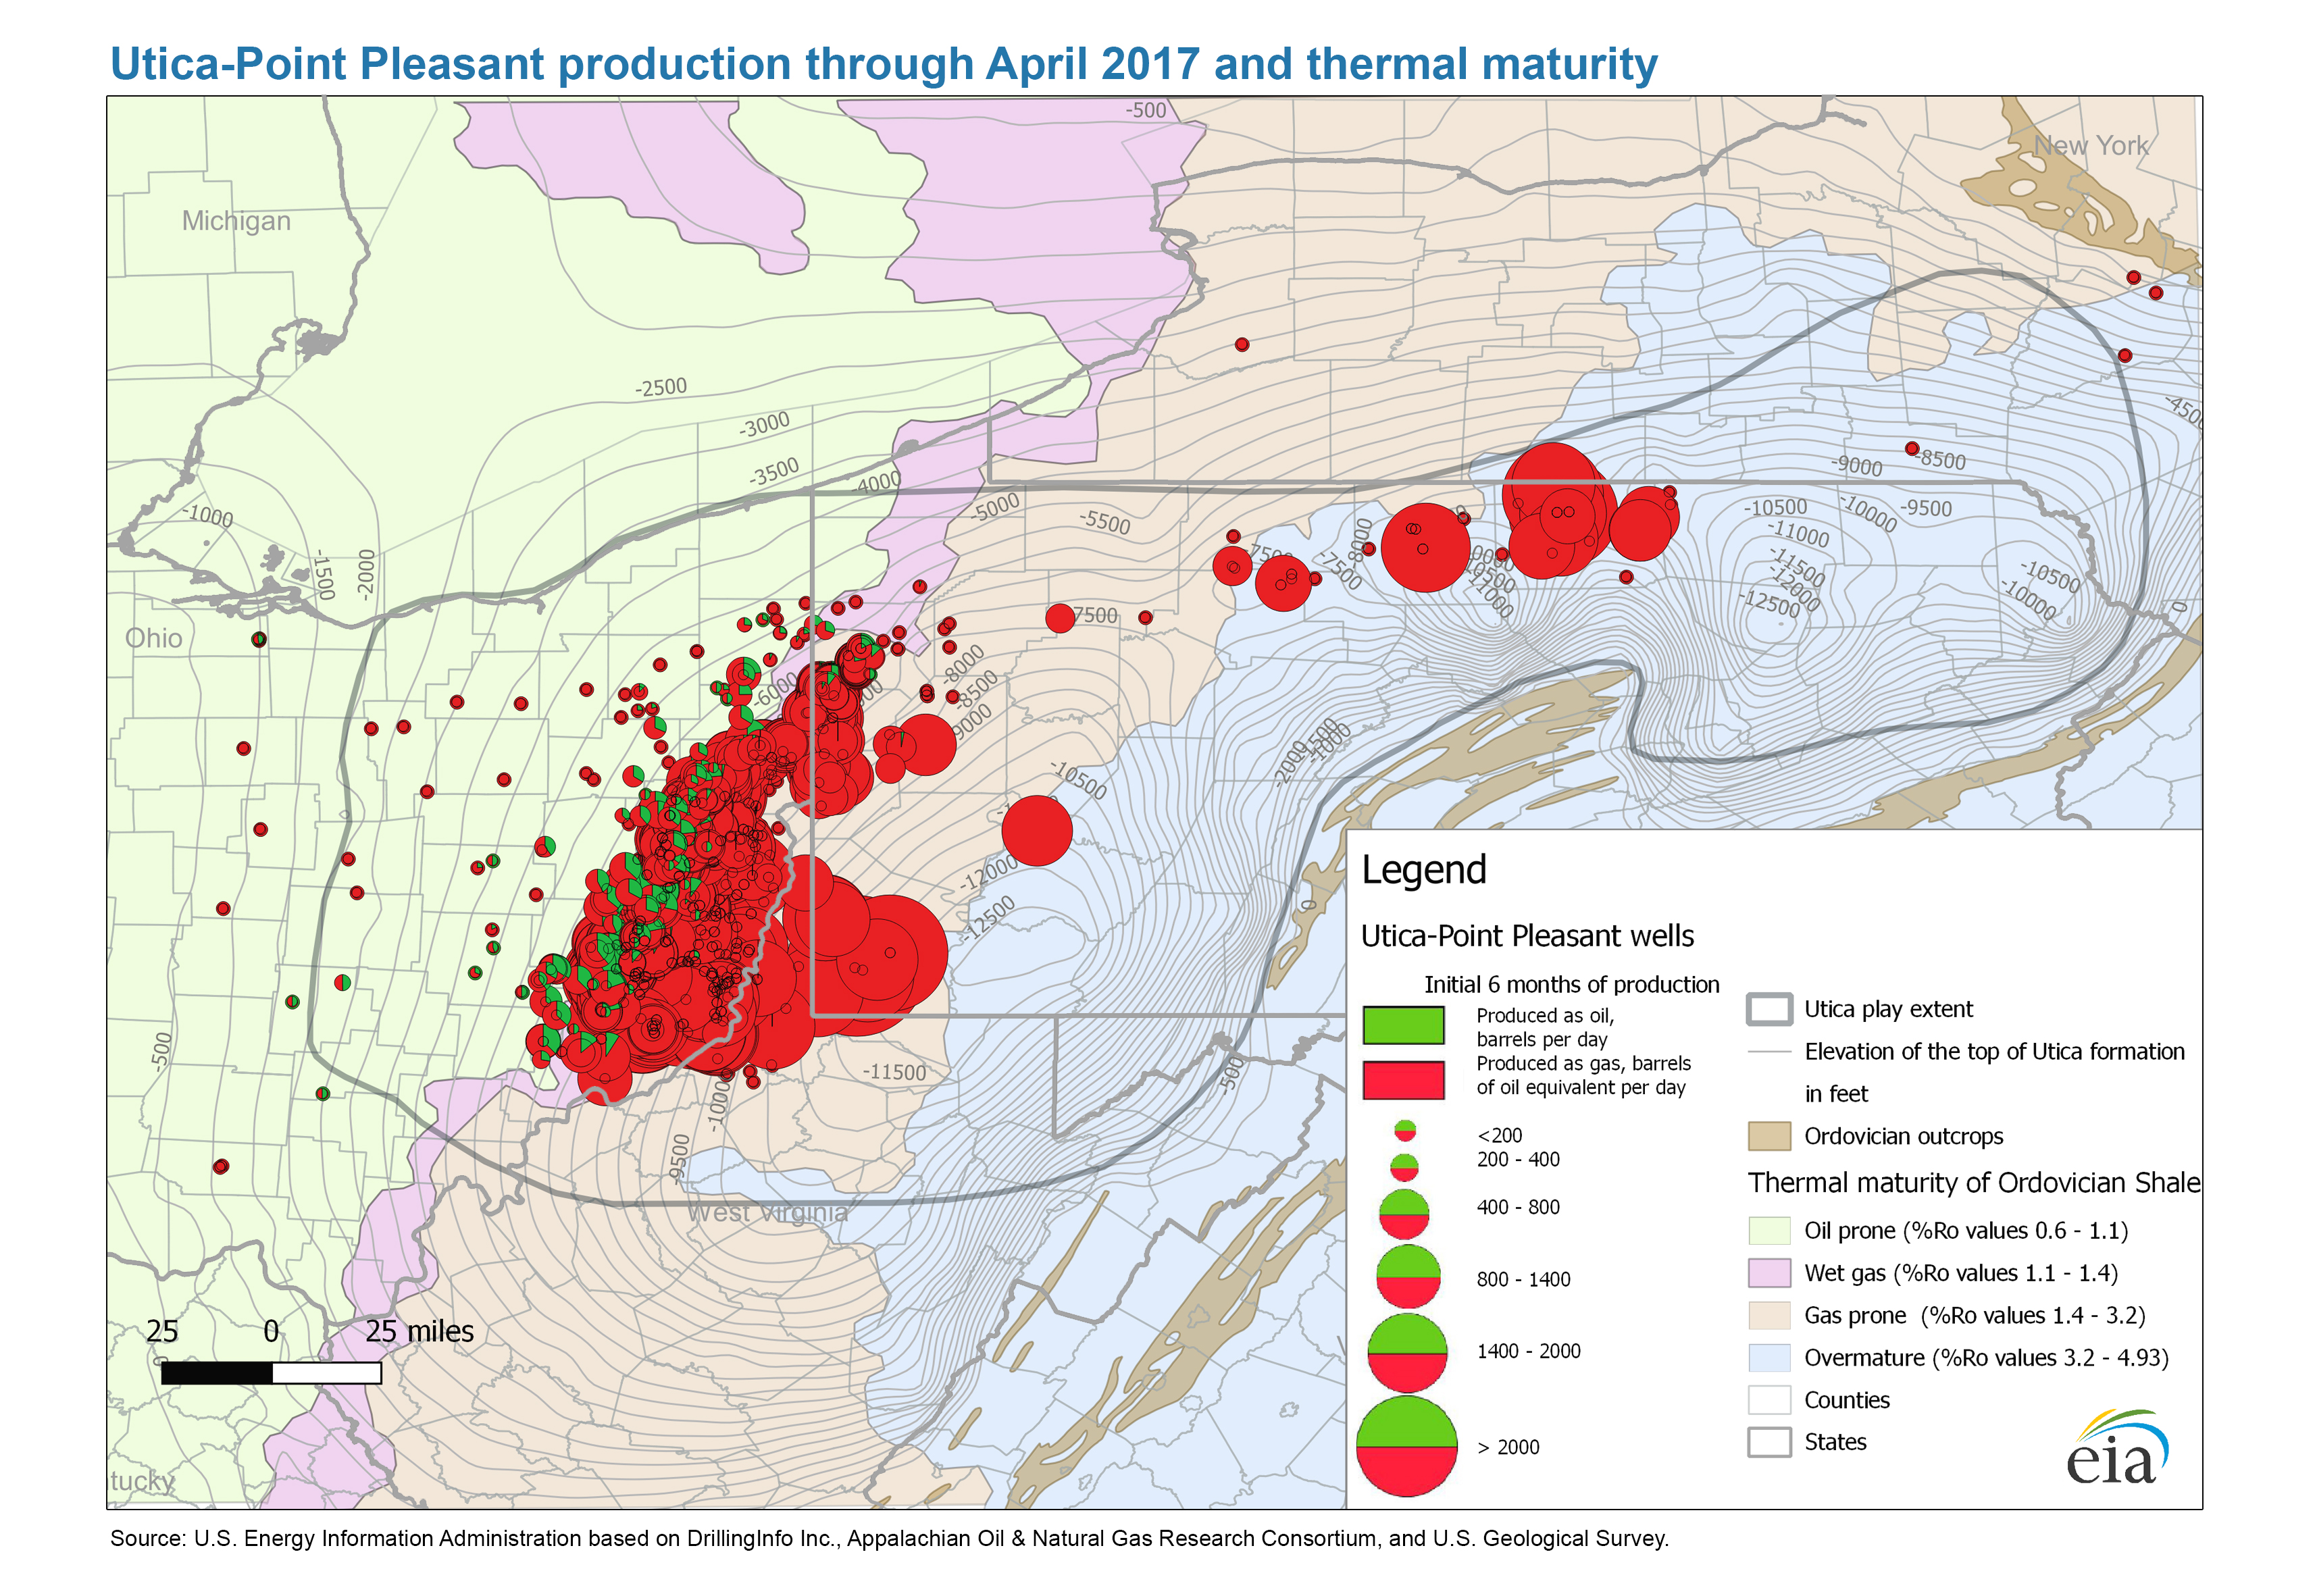 Maps: Oil and Gas Exploration, Resources, and Production ... on solar energy production map, german resource map, gas production map, petroleum production map, organic production map, food production map, wind energy production map, chemical production map,